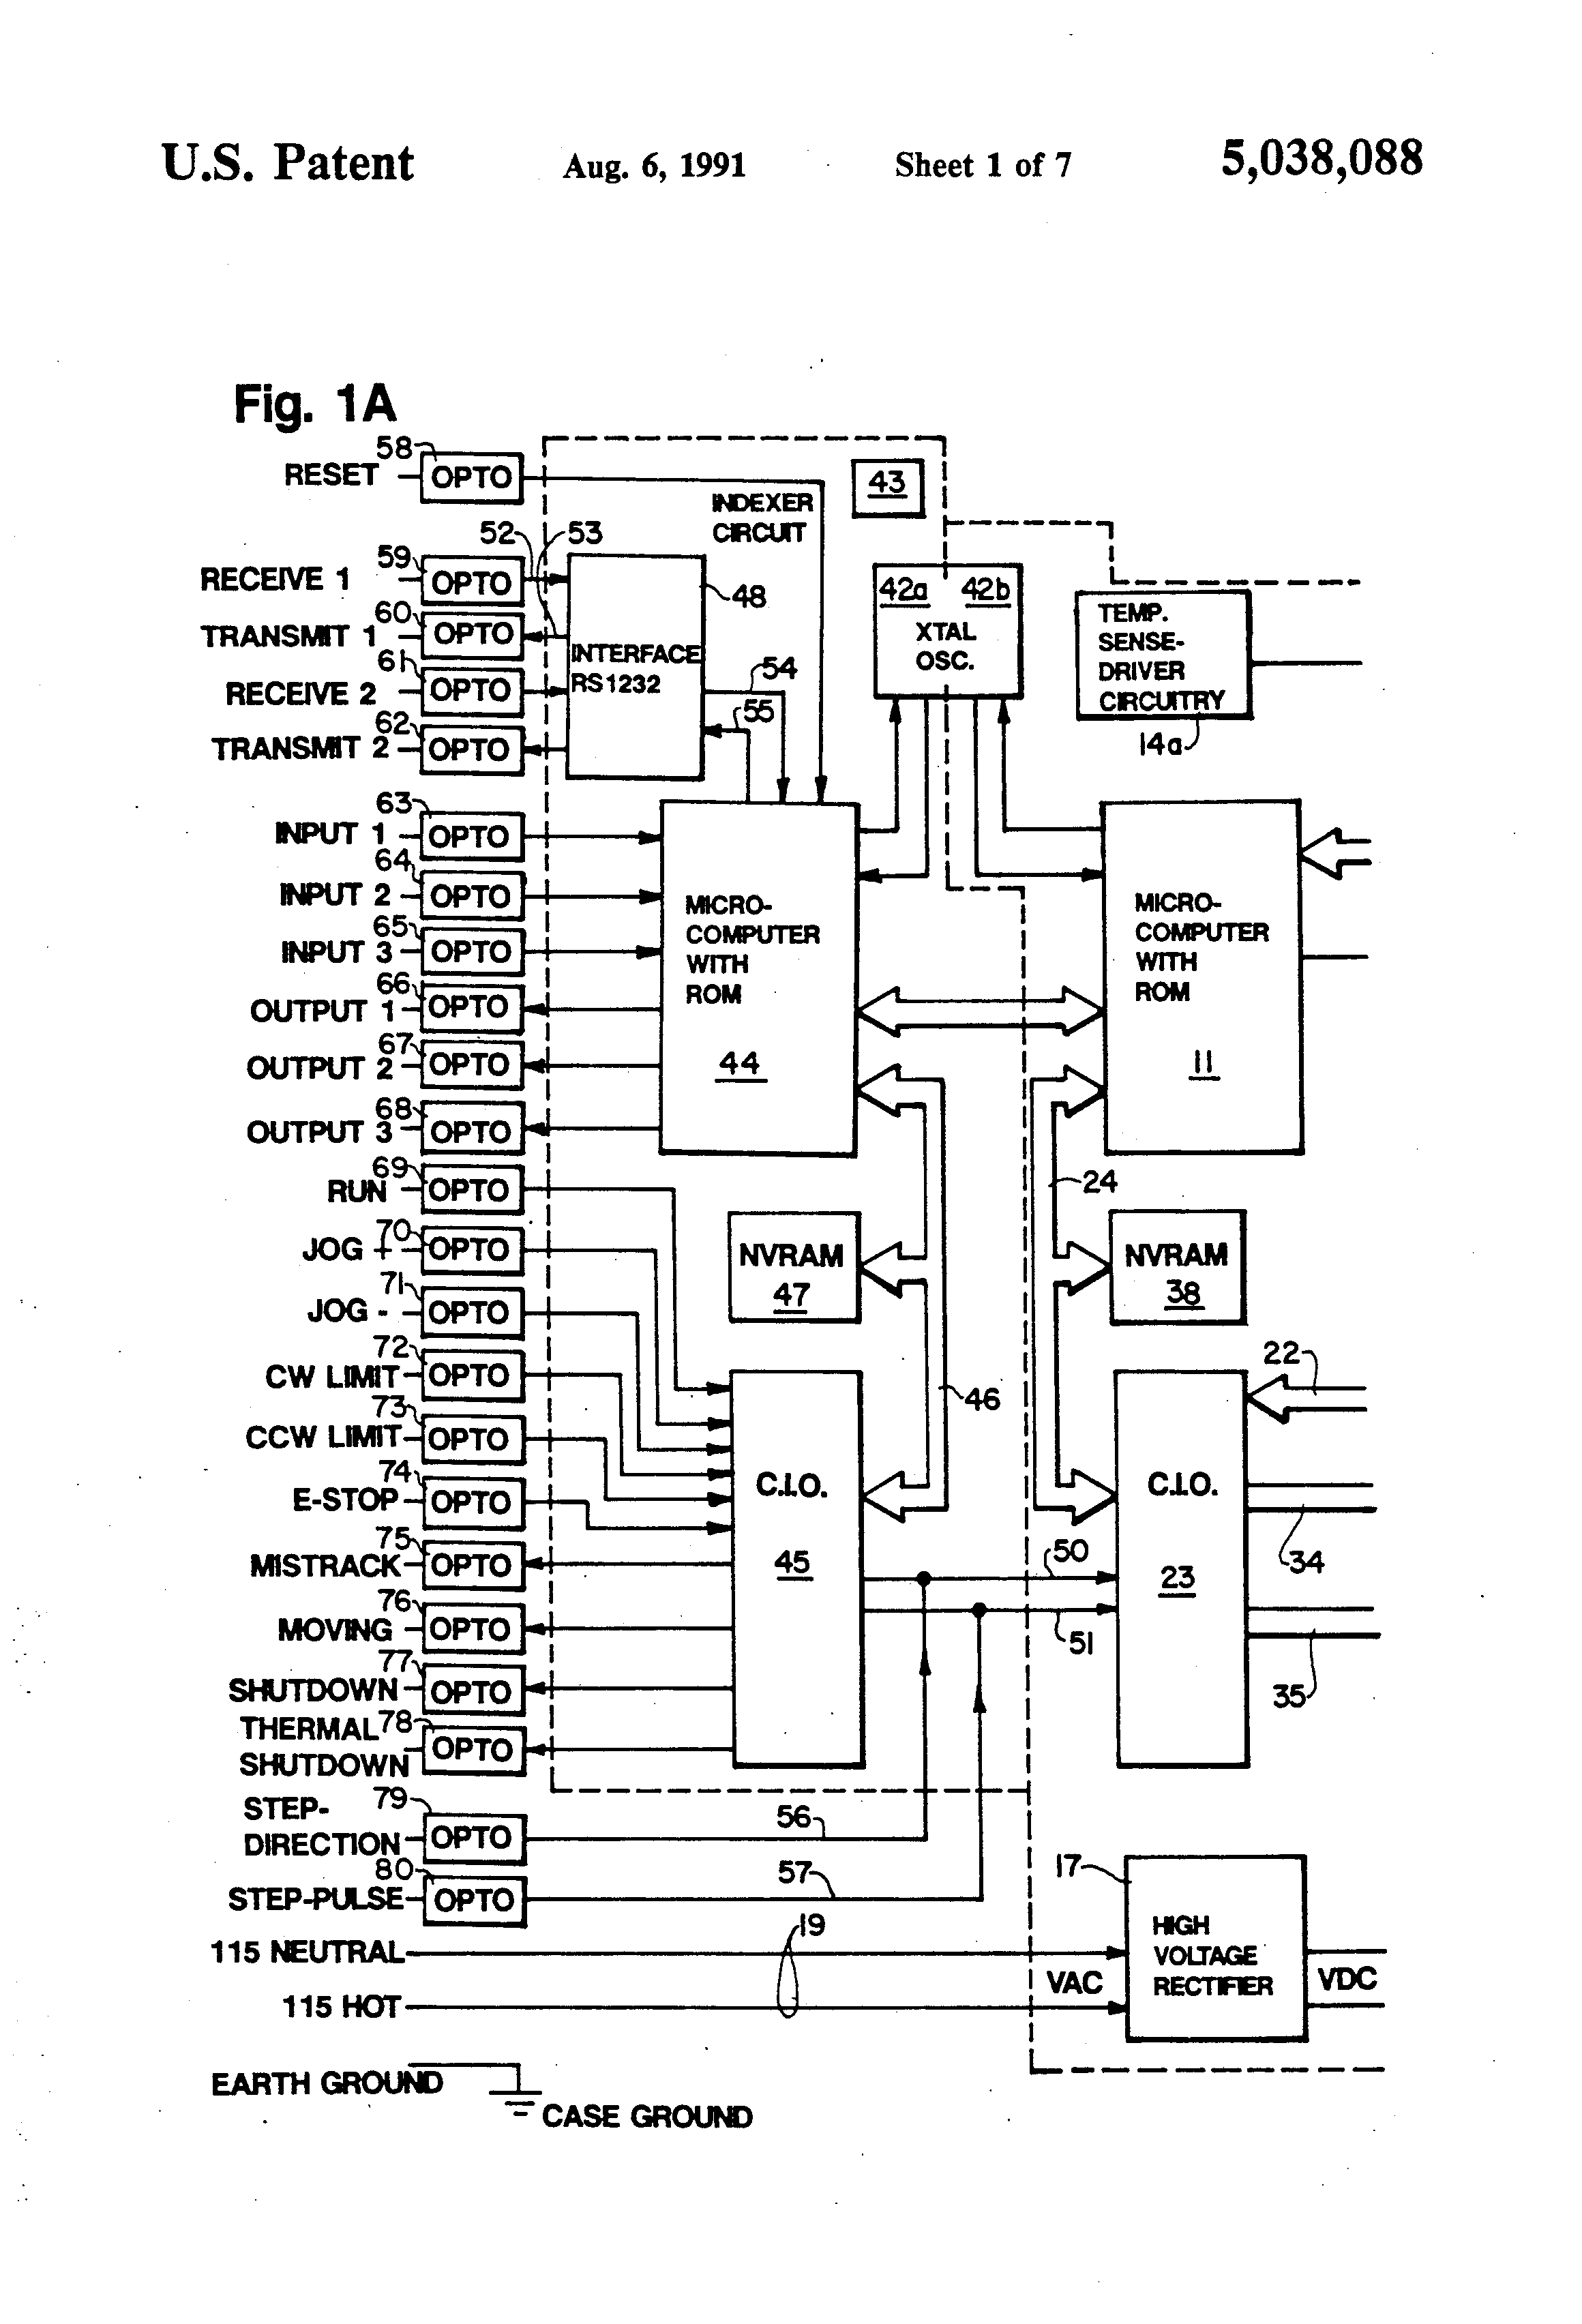 sew brake motor wiring diagram likewise sew brake motor wiring diagram